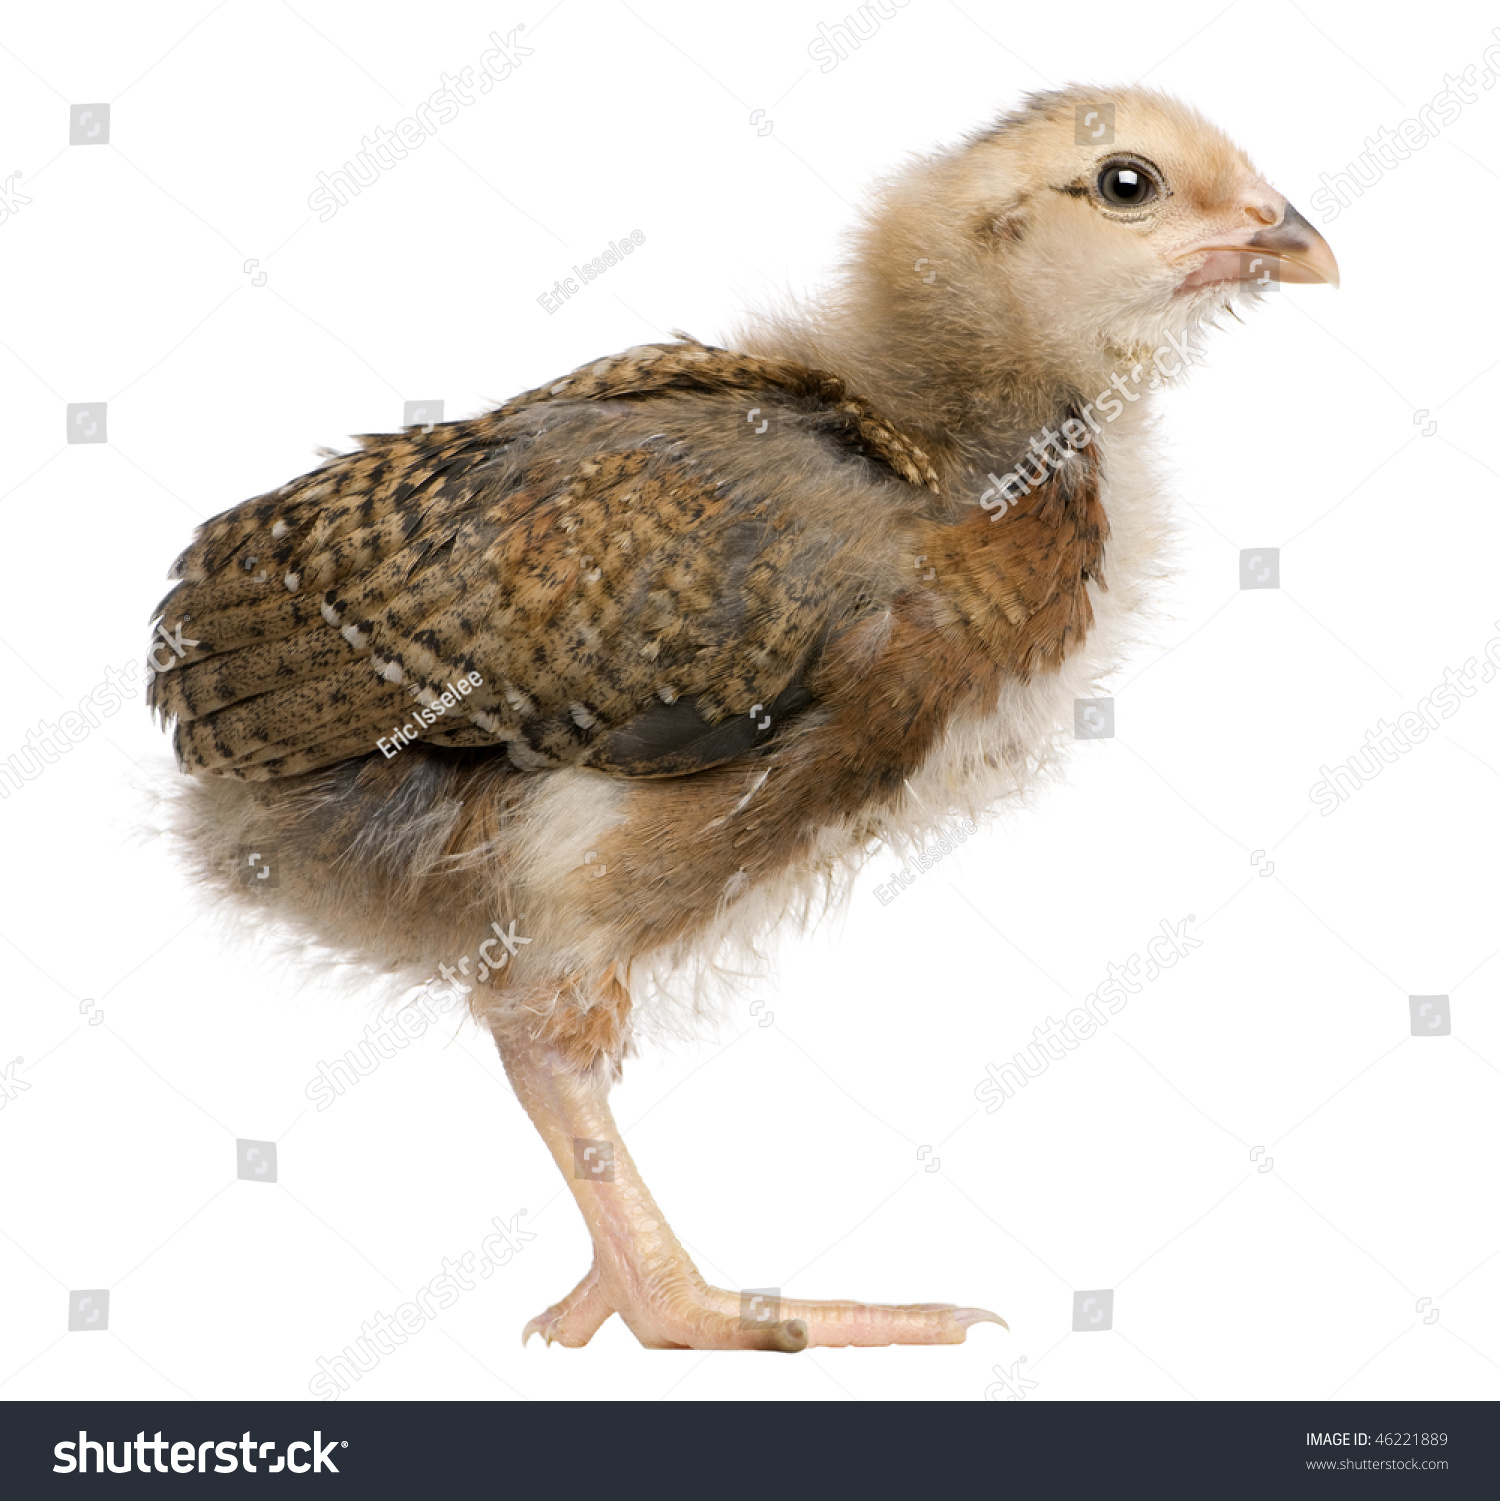 stock-photo-araucana-also-known-as-a-south-american-rumpless-chick-days-old-standing-in-front-of-white-46221889.jpg